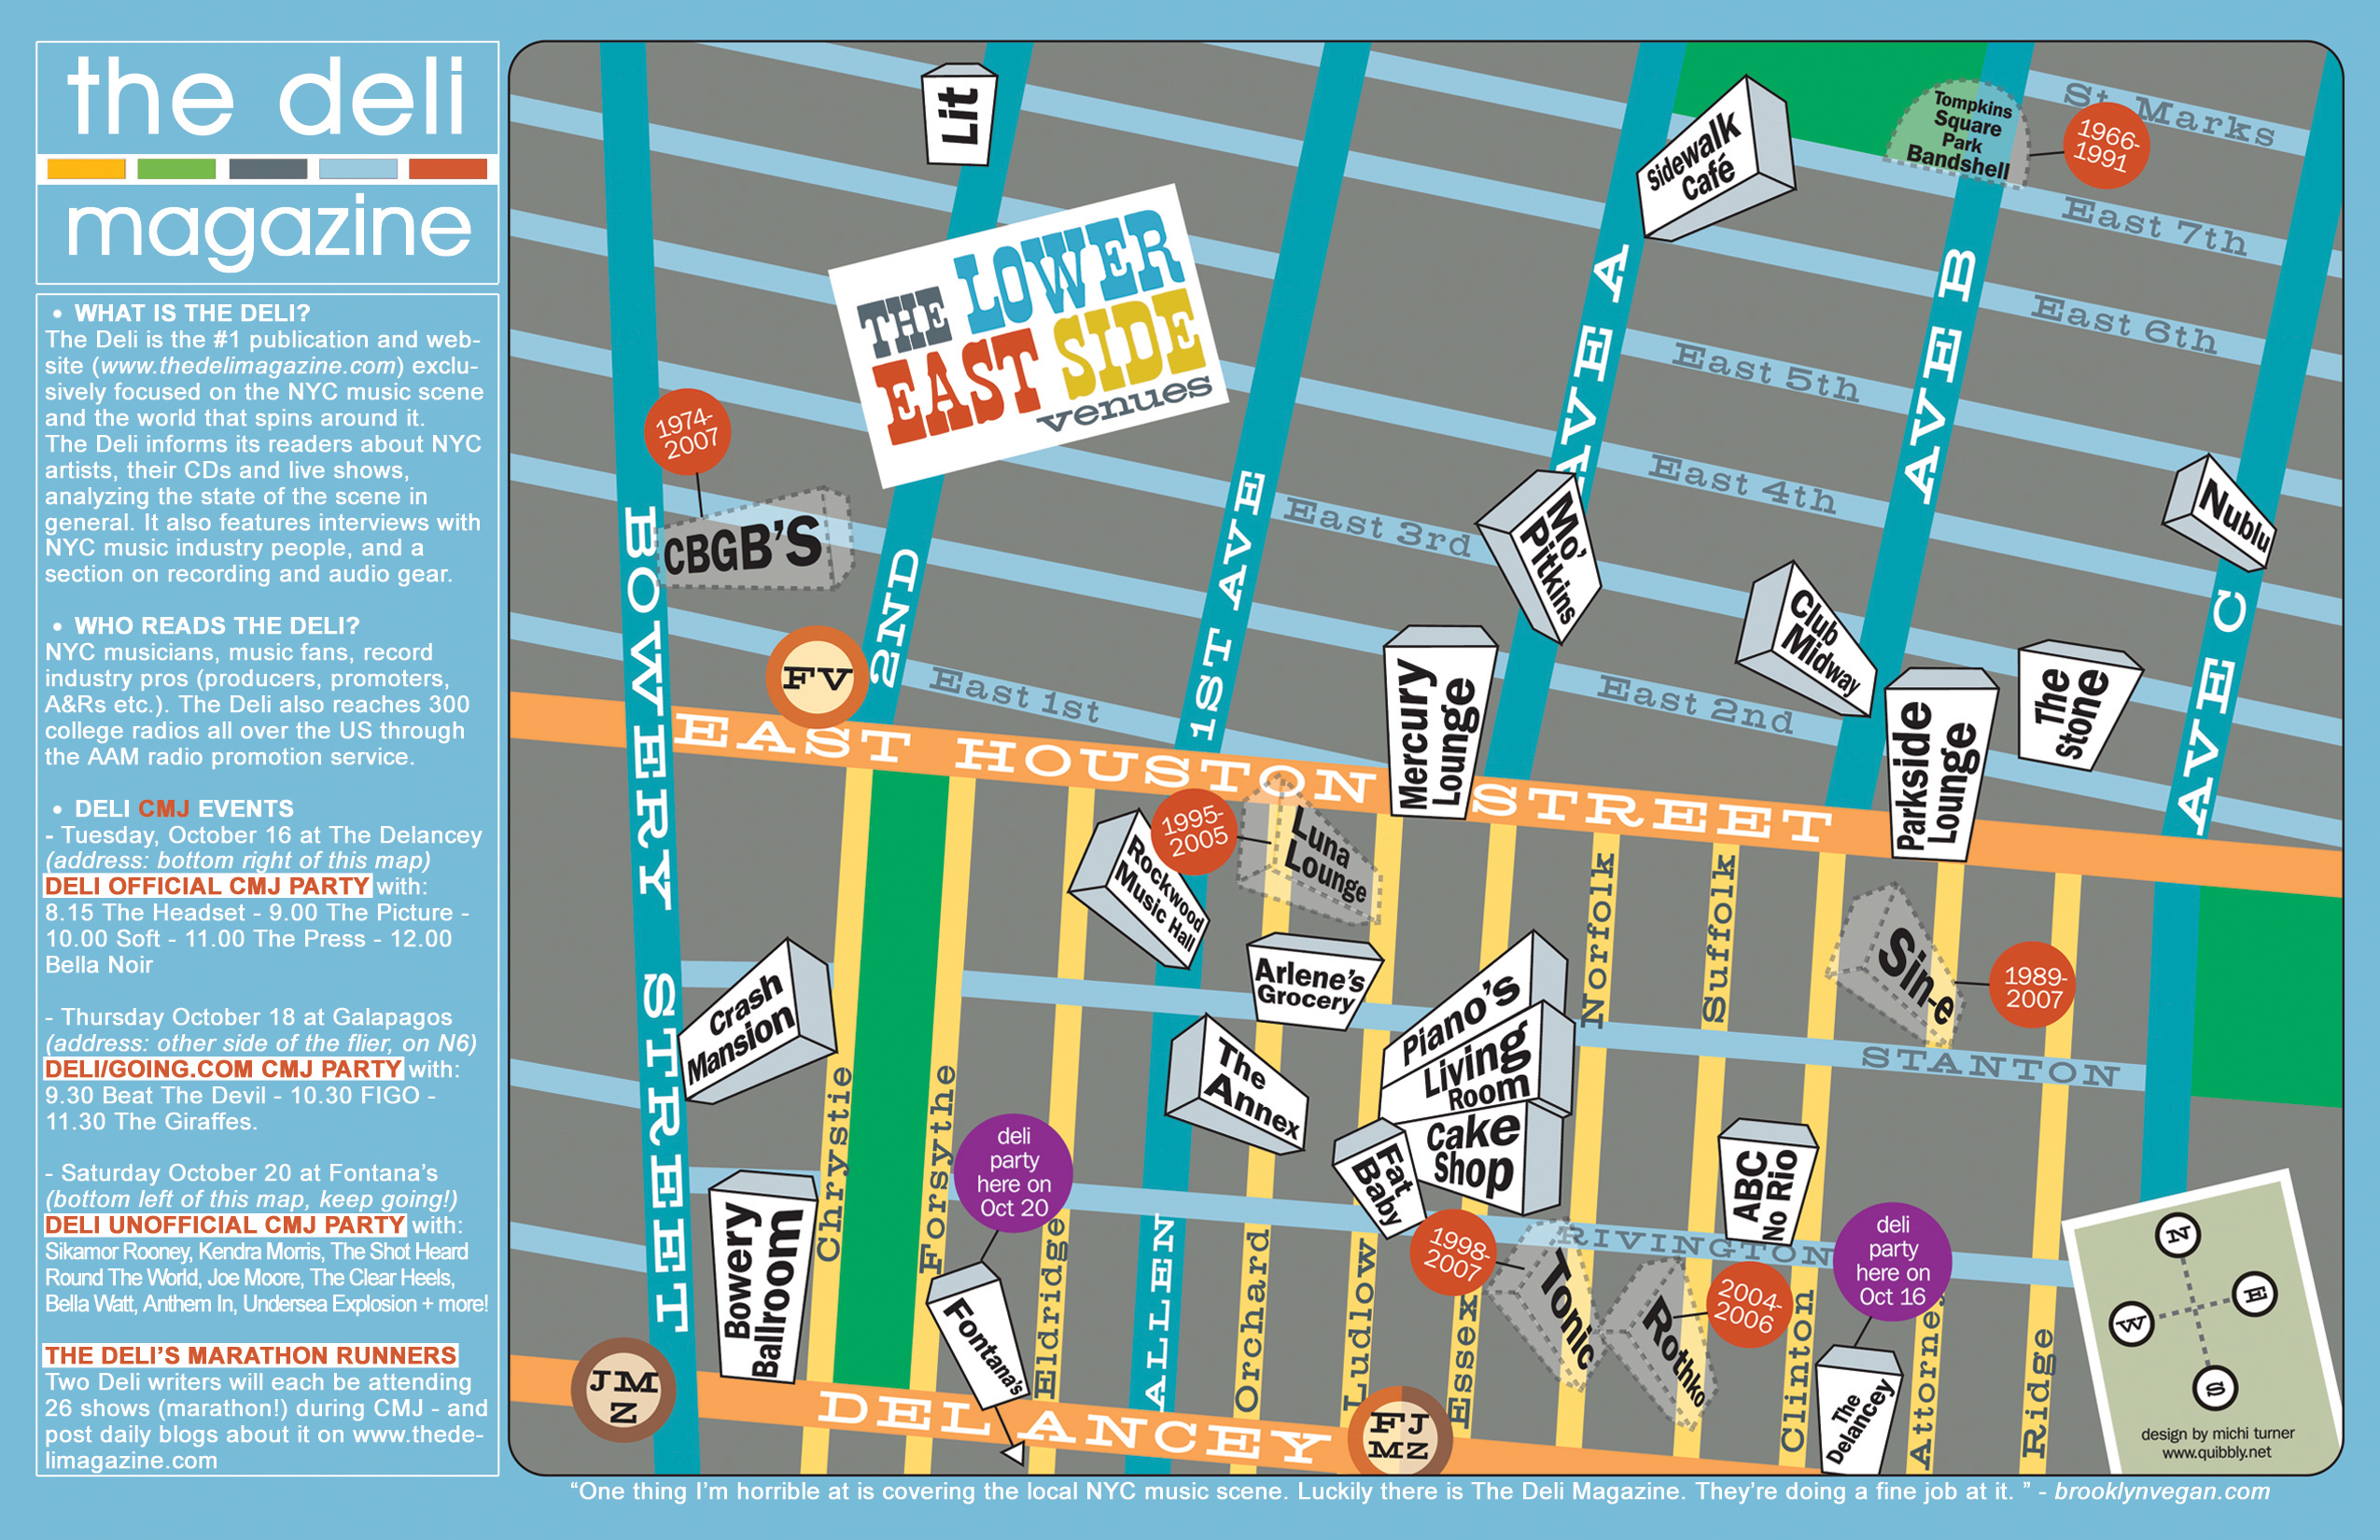 Deli Magazines Lower East Side Music venues Map - Lower East ...